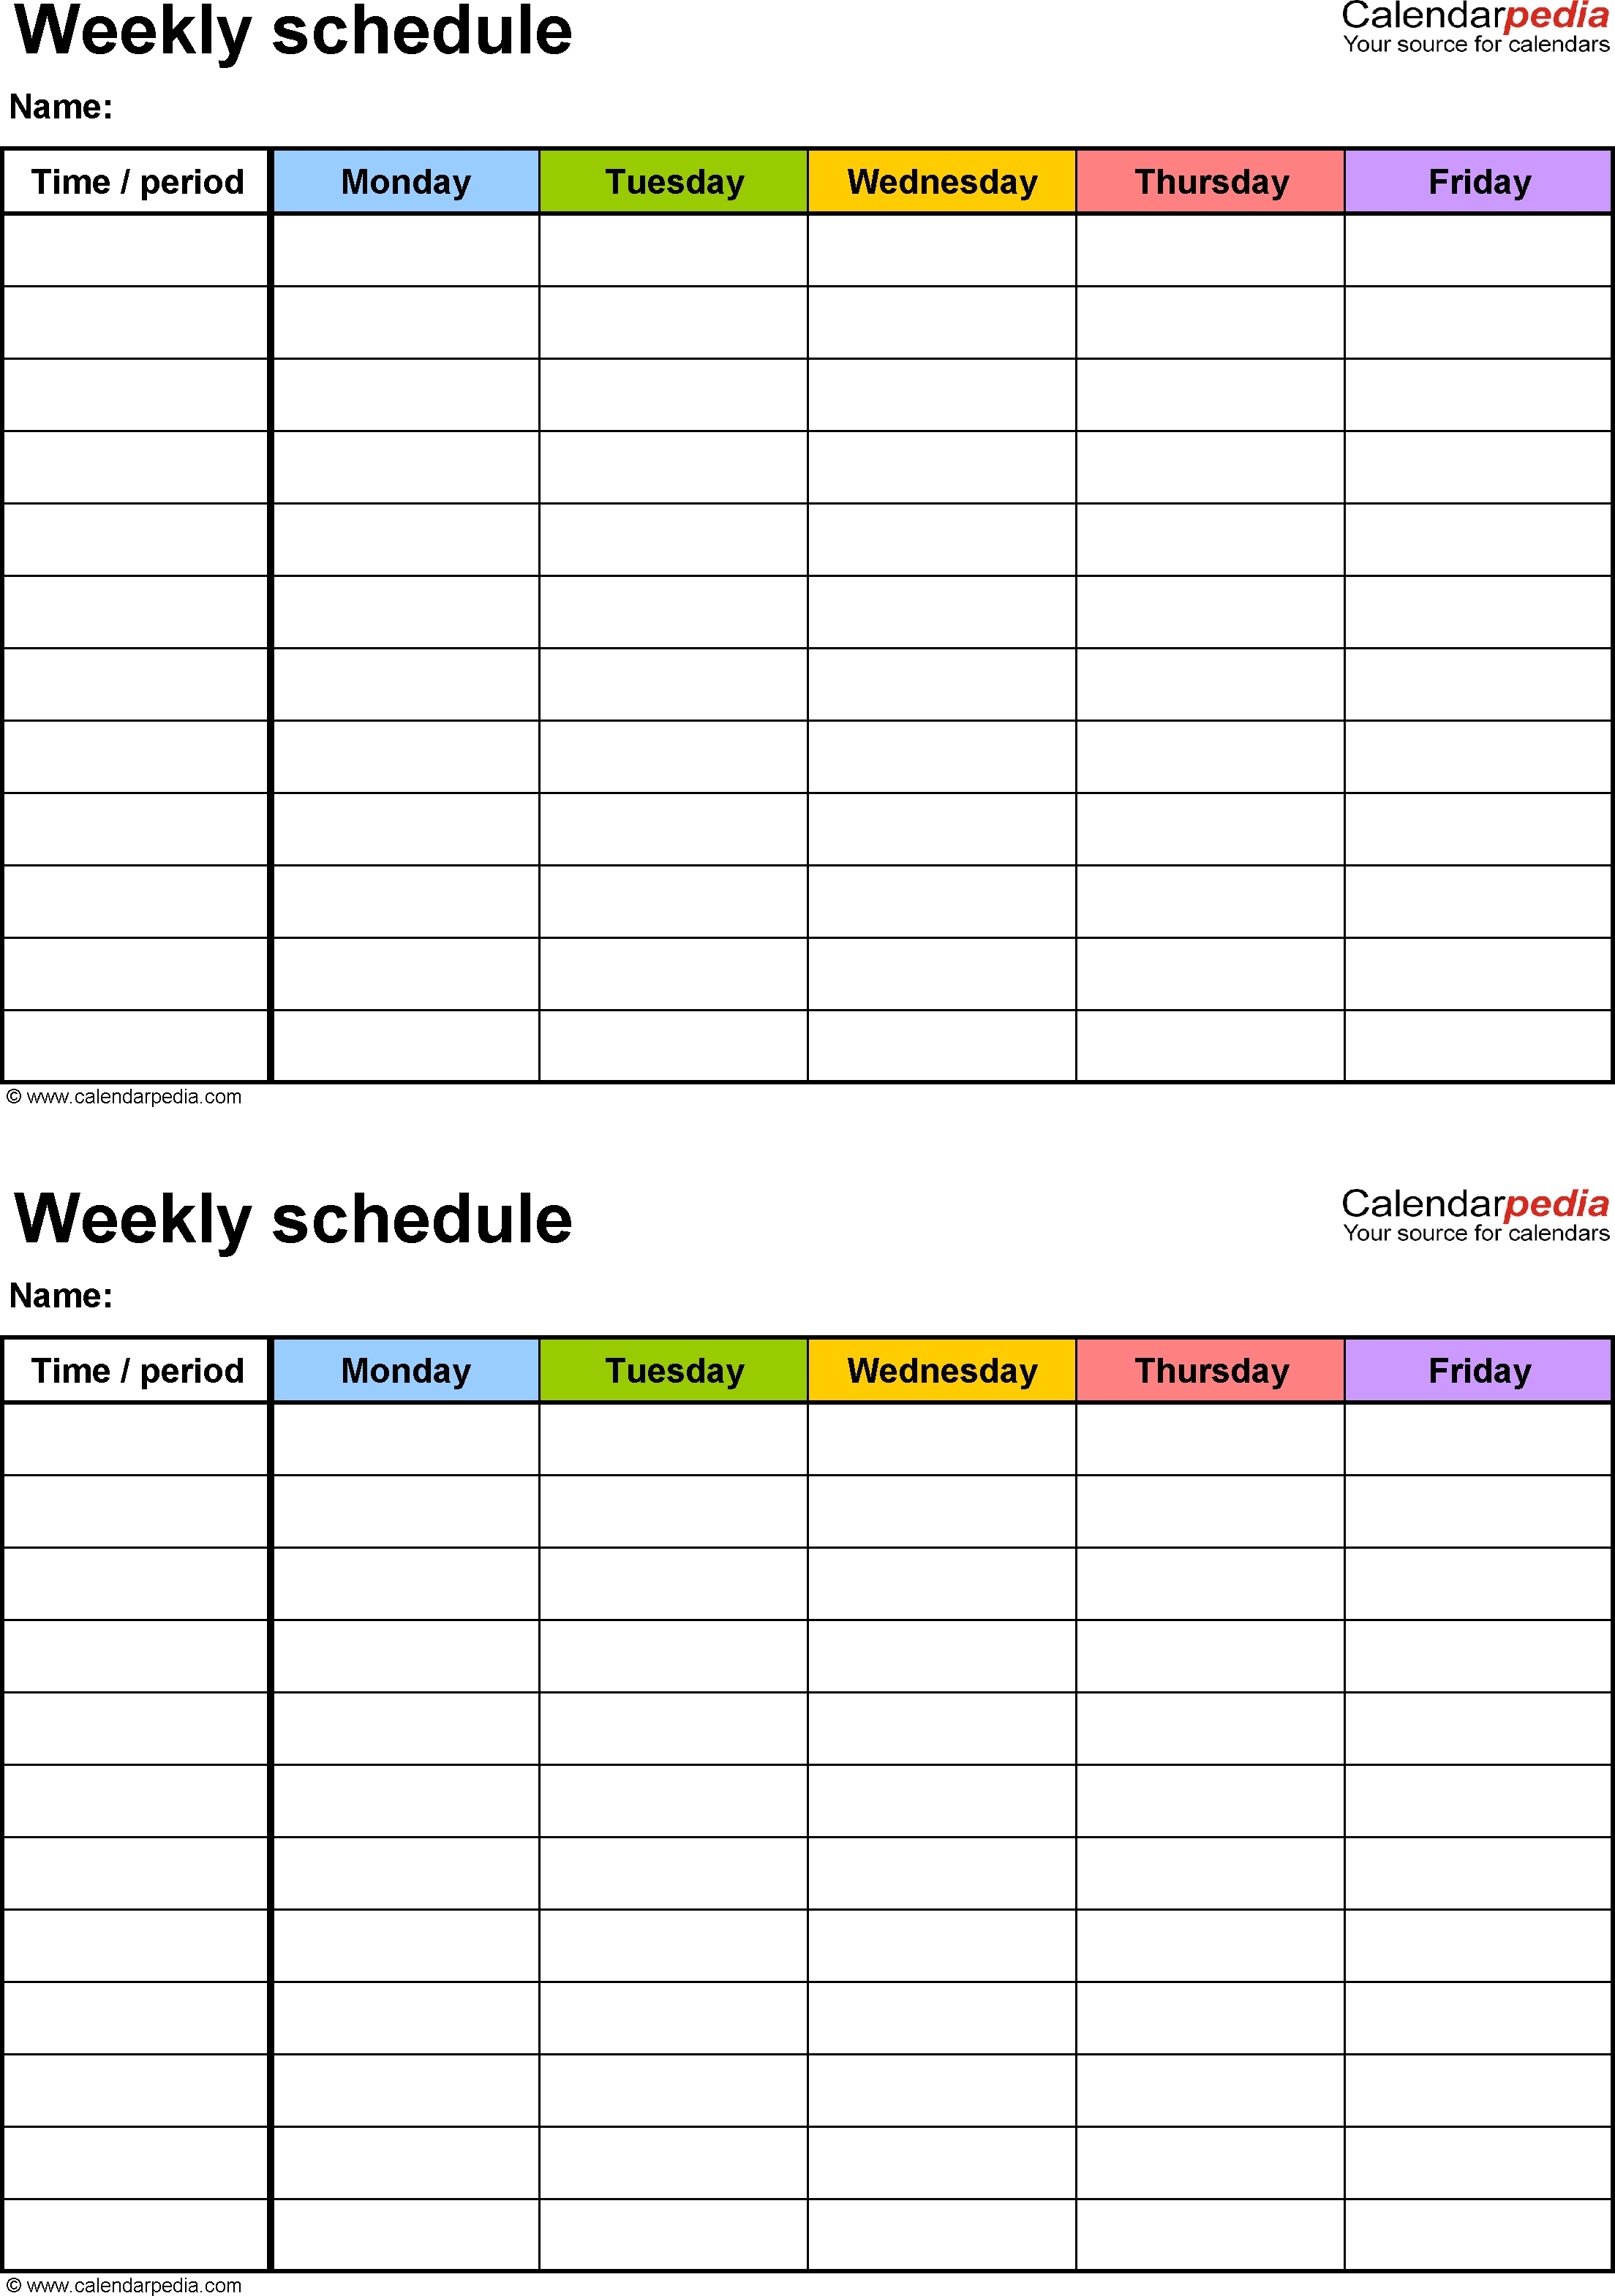 Free Weekly Schedule Templates For Word - 18 Templates-Monday Through Friday Planning Template